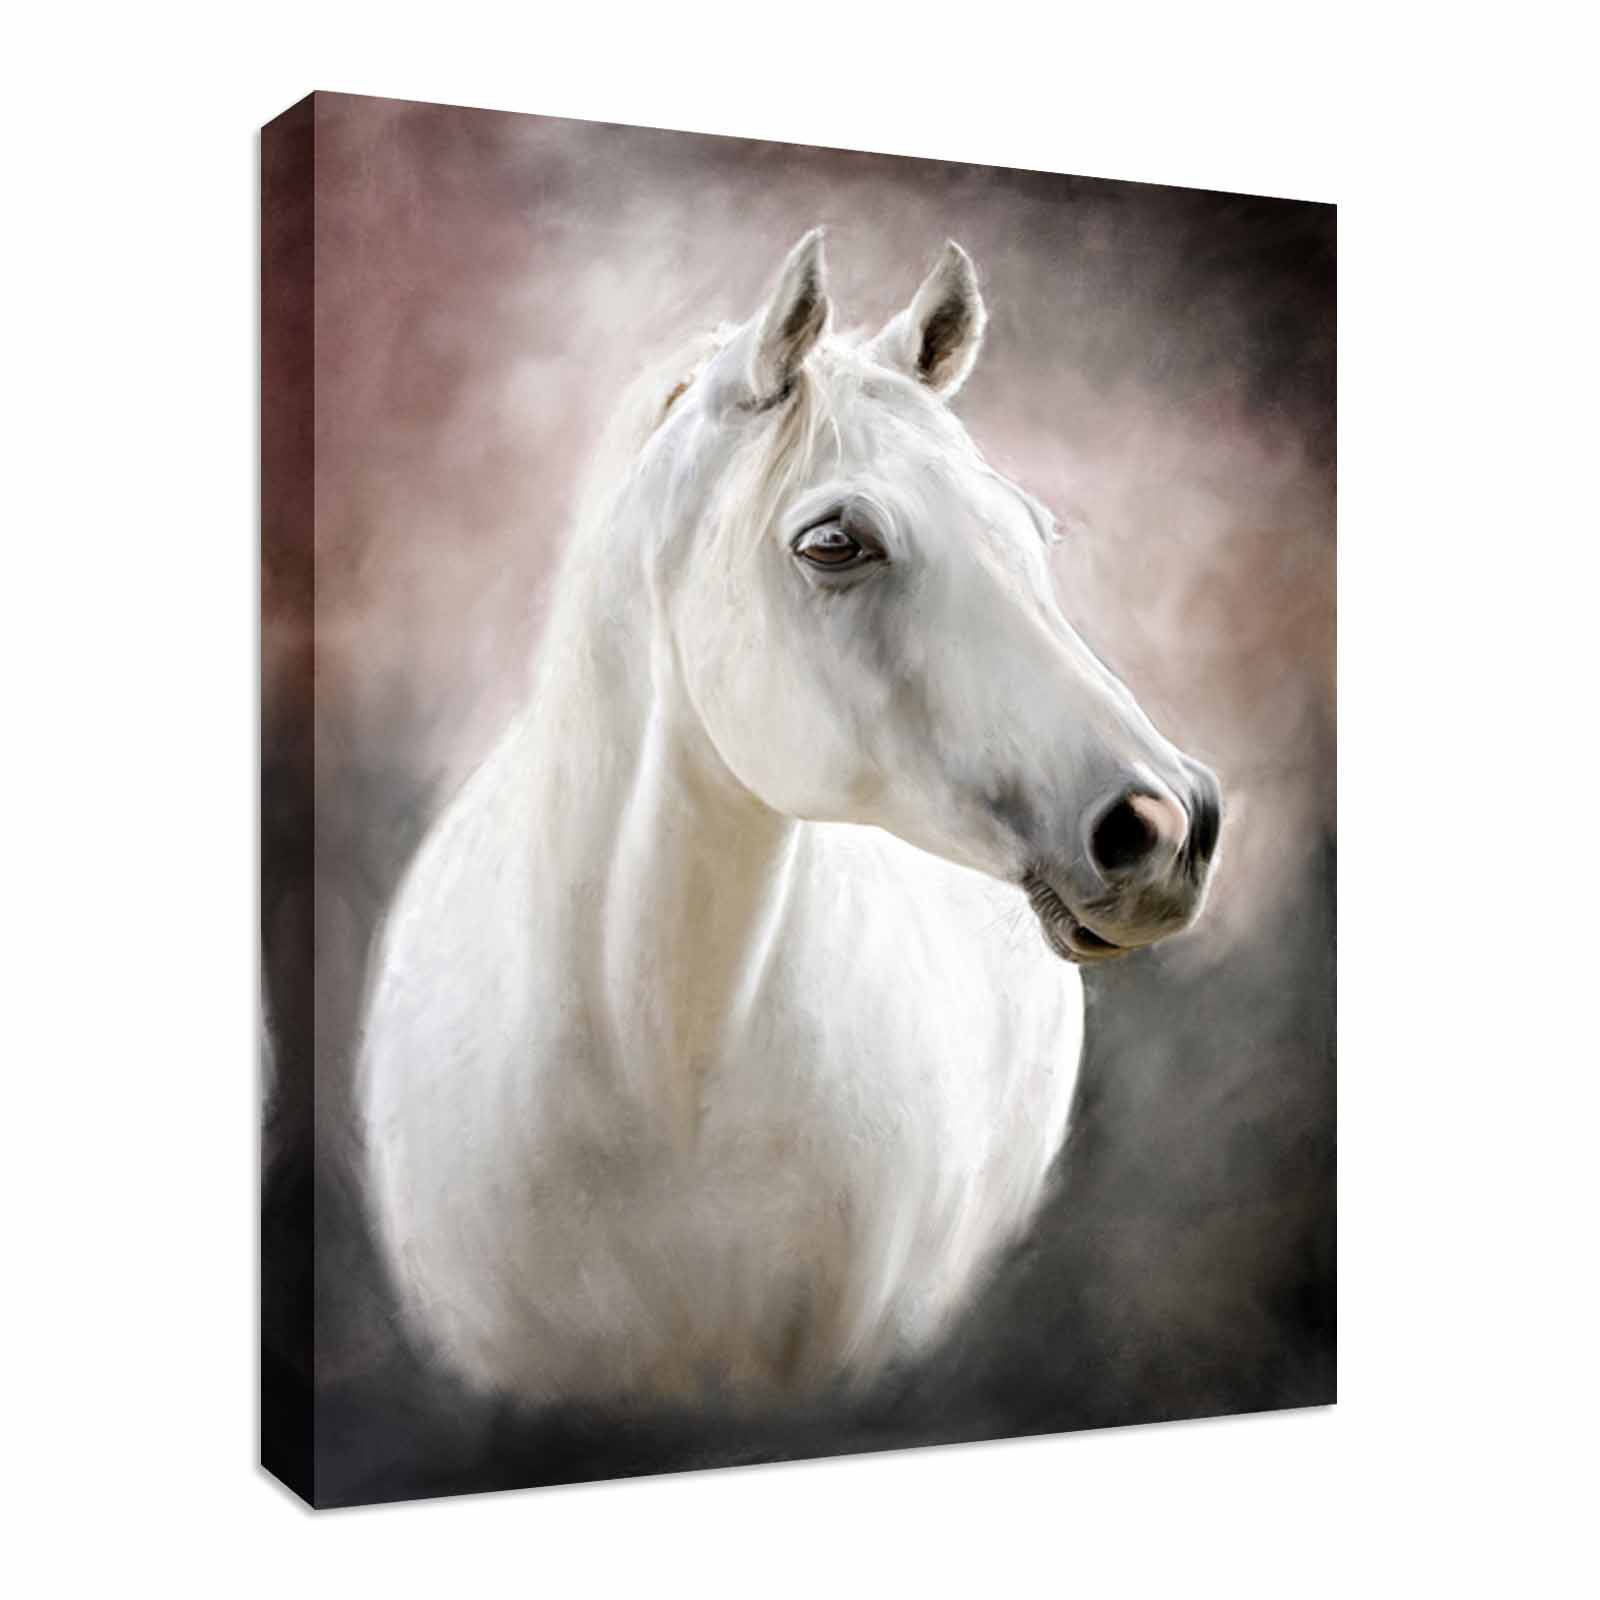 Painting portrait of a Weiß horse Canvas Art Cheap Wall Print Home Interior